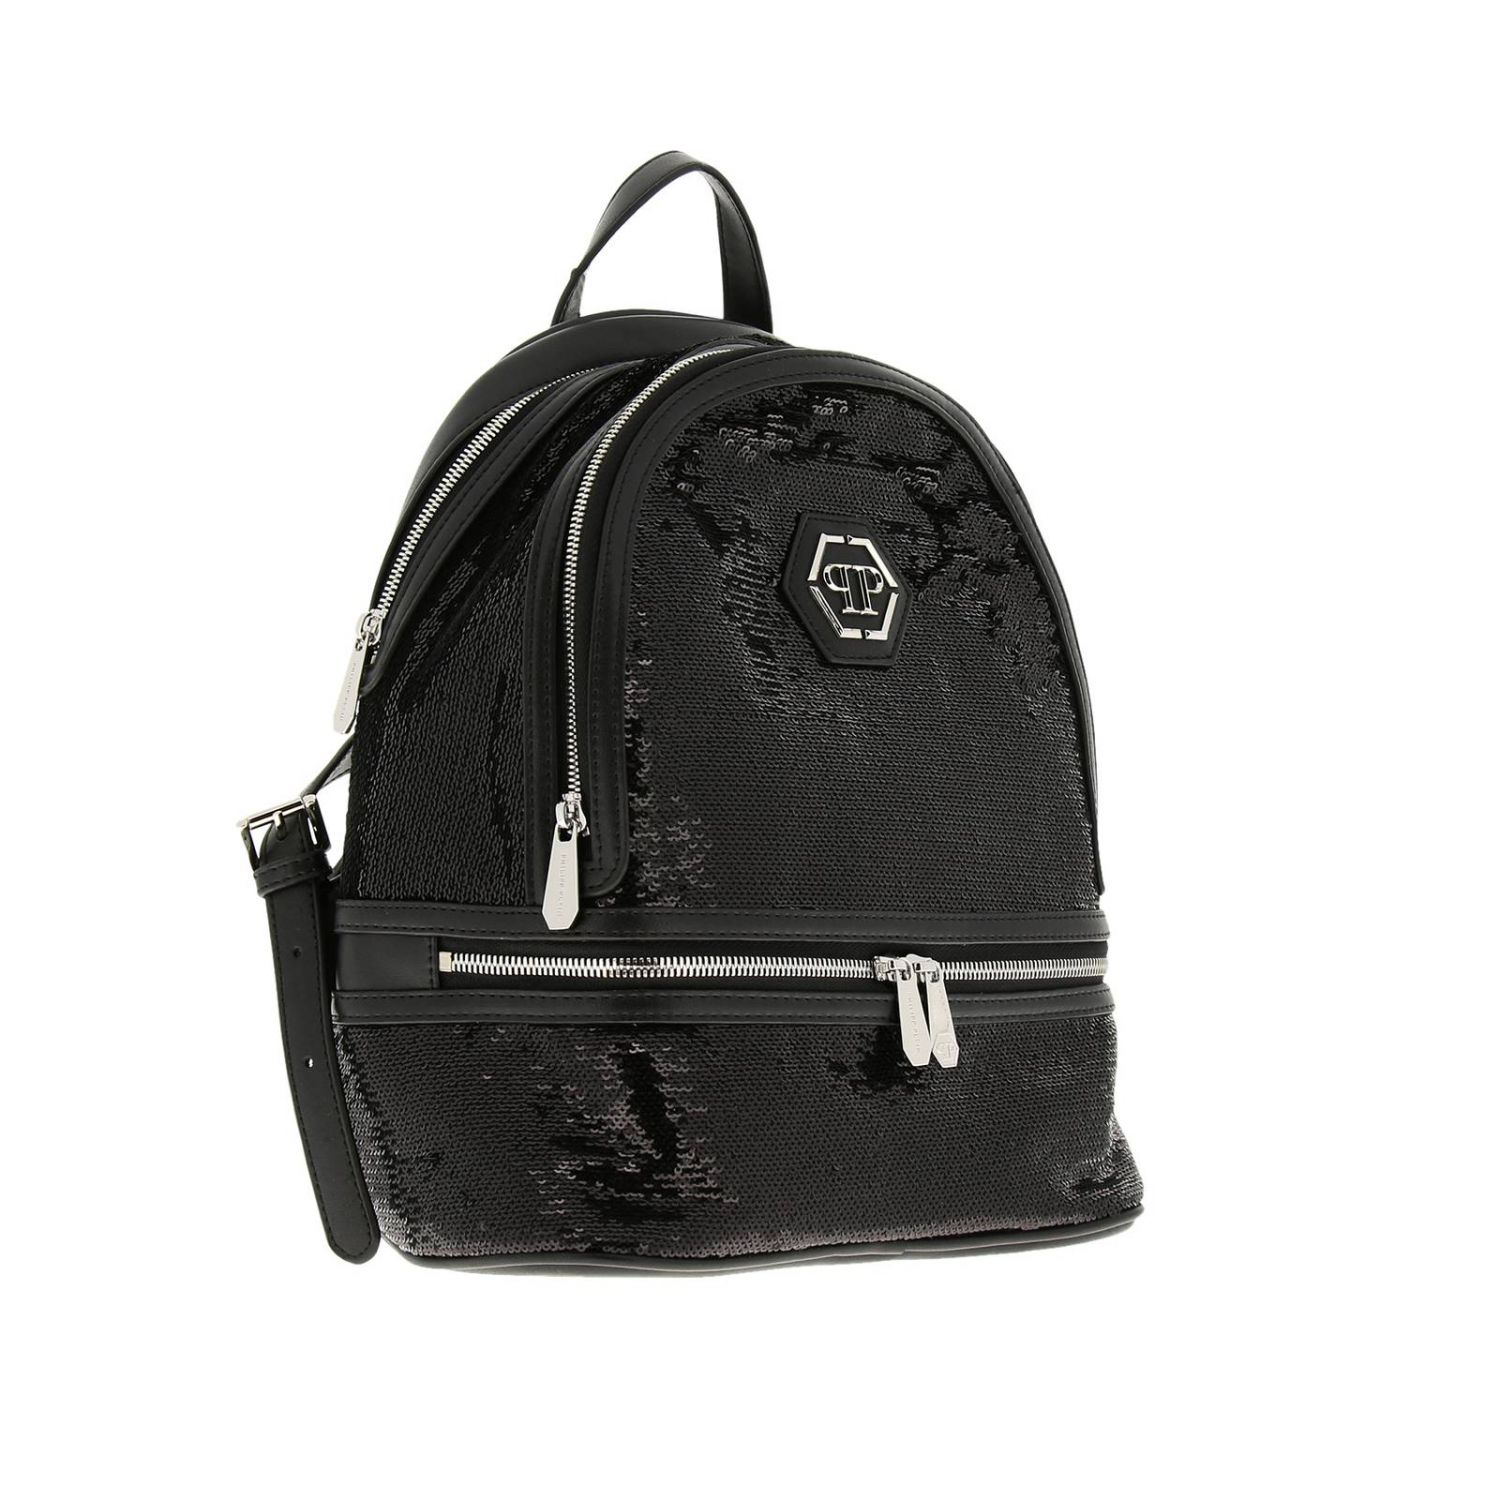 Philipp Plein backpack in leather and sequins with hexagonal monogram and zip black 3